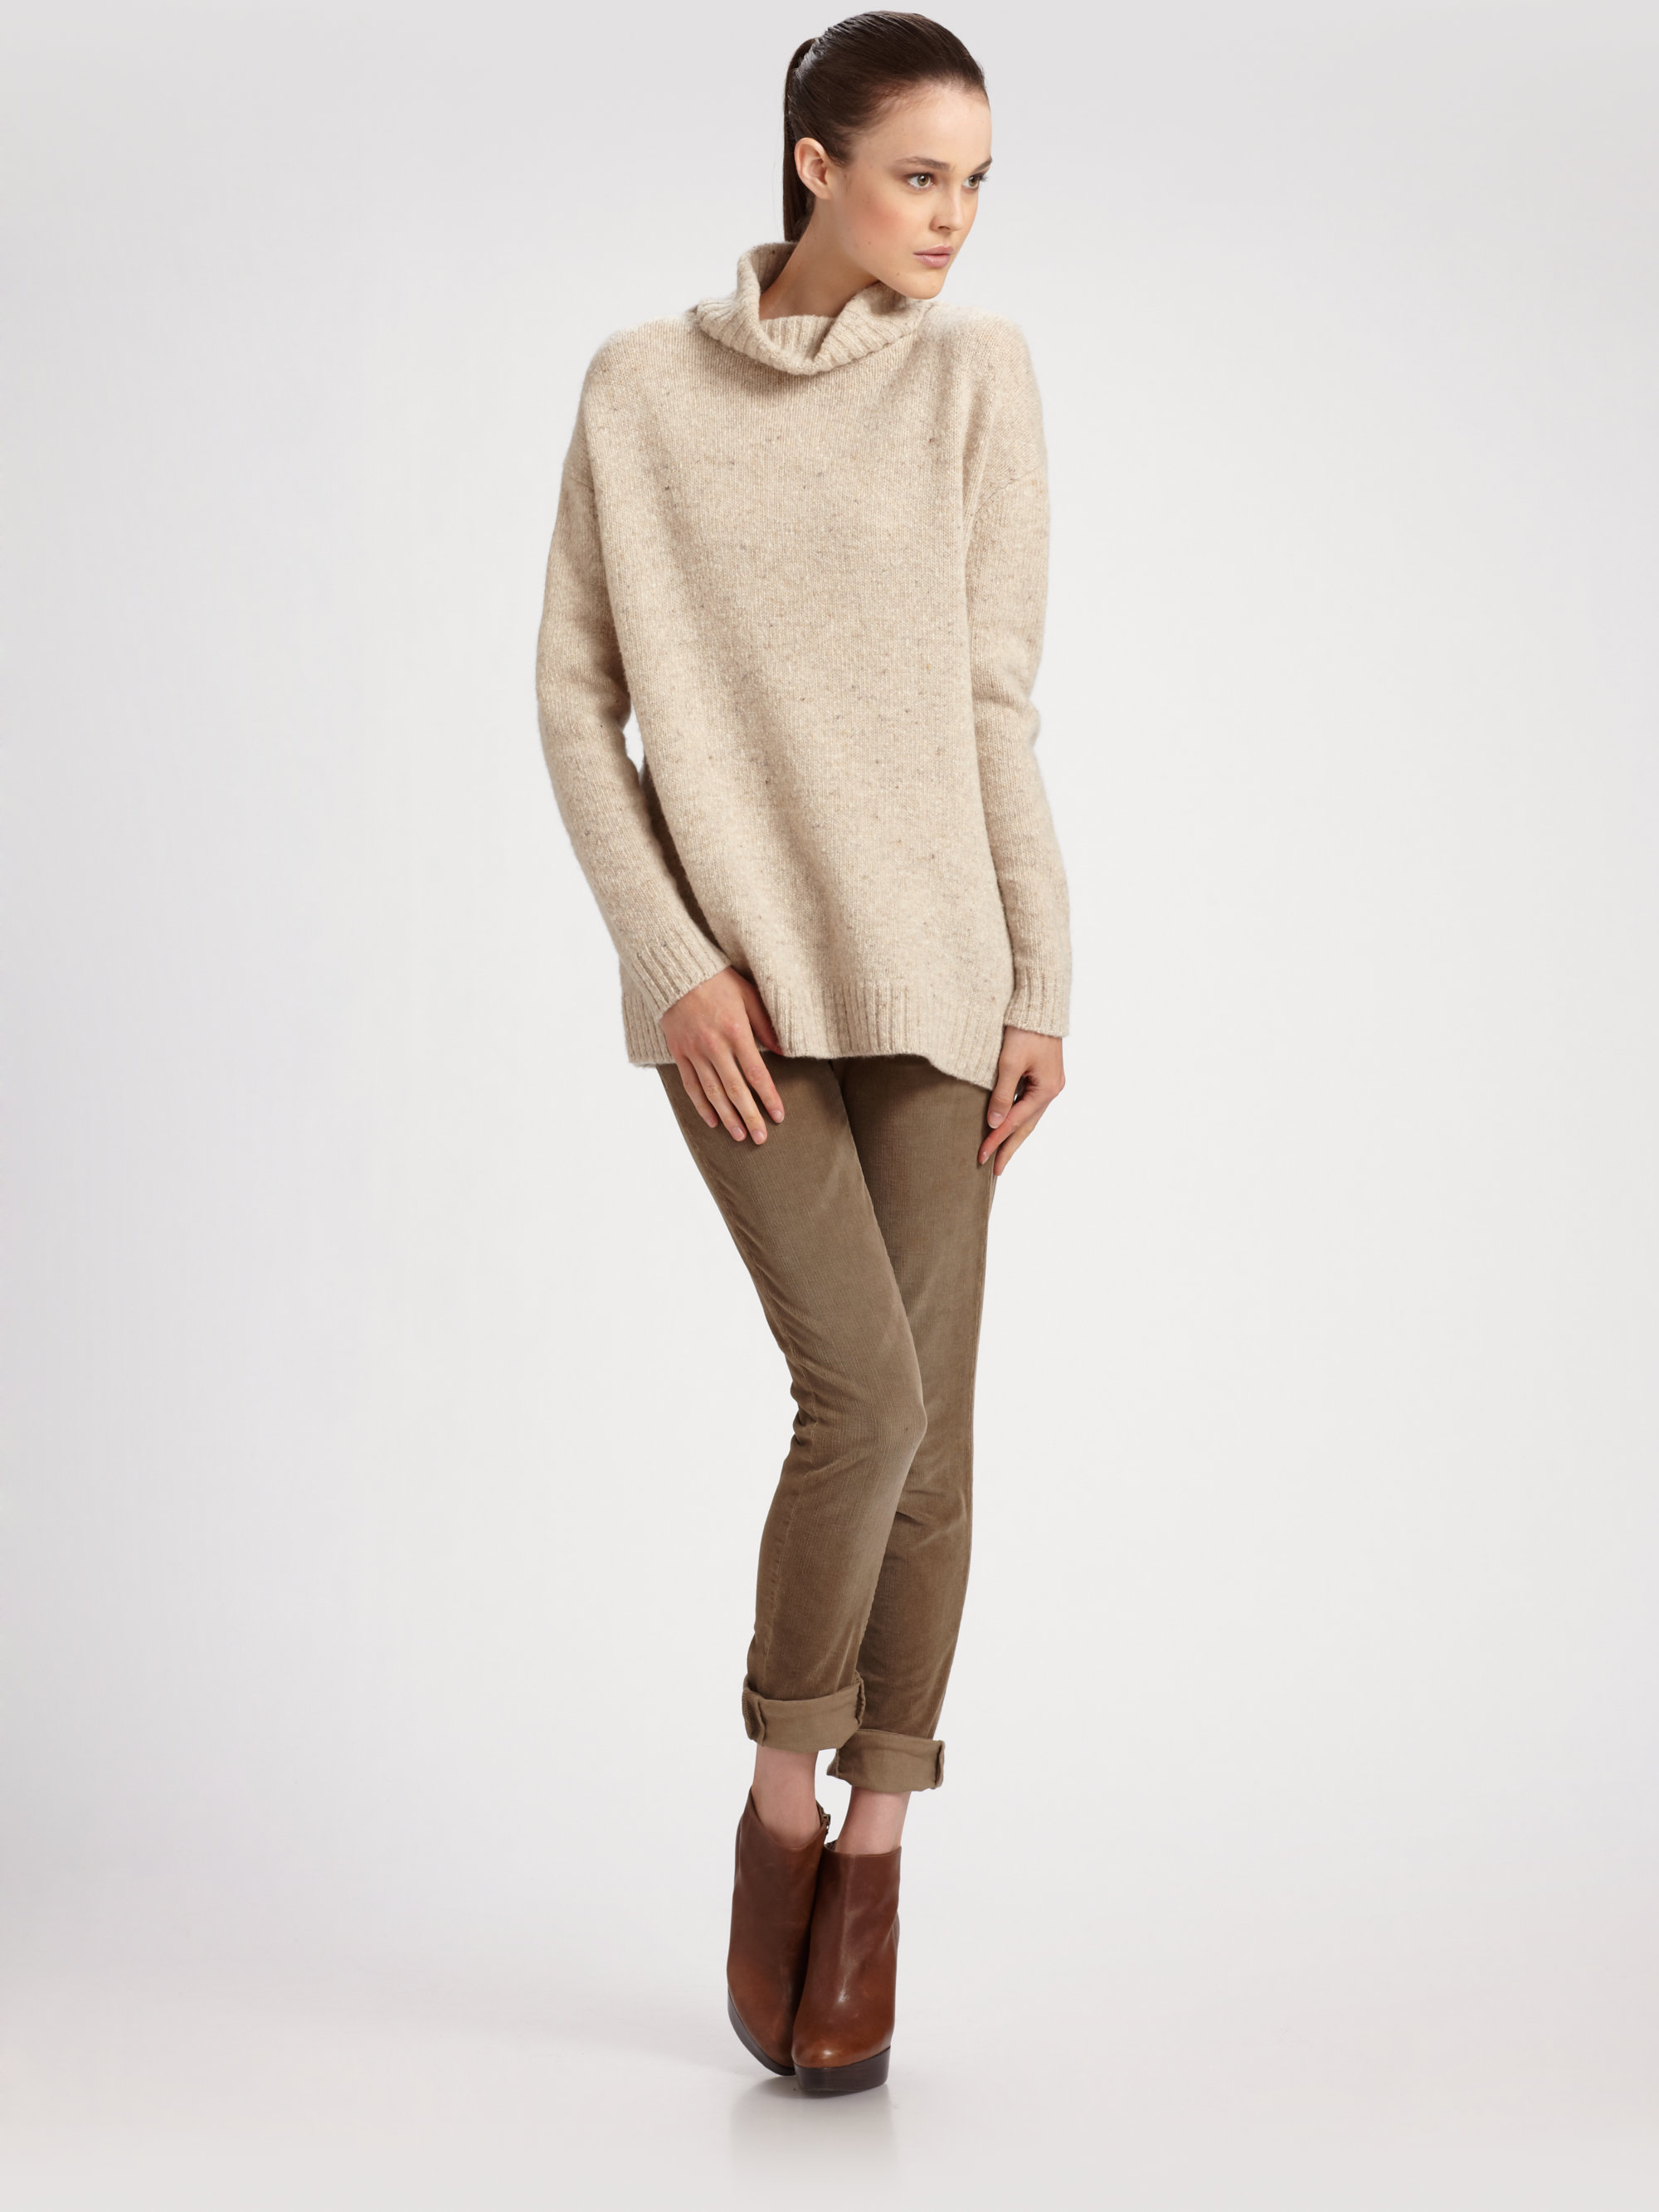 Vince Turtleneck Sweater in Natural | Lyst